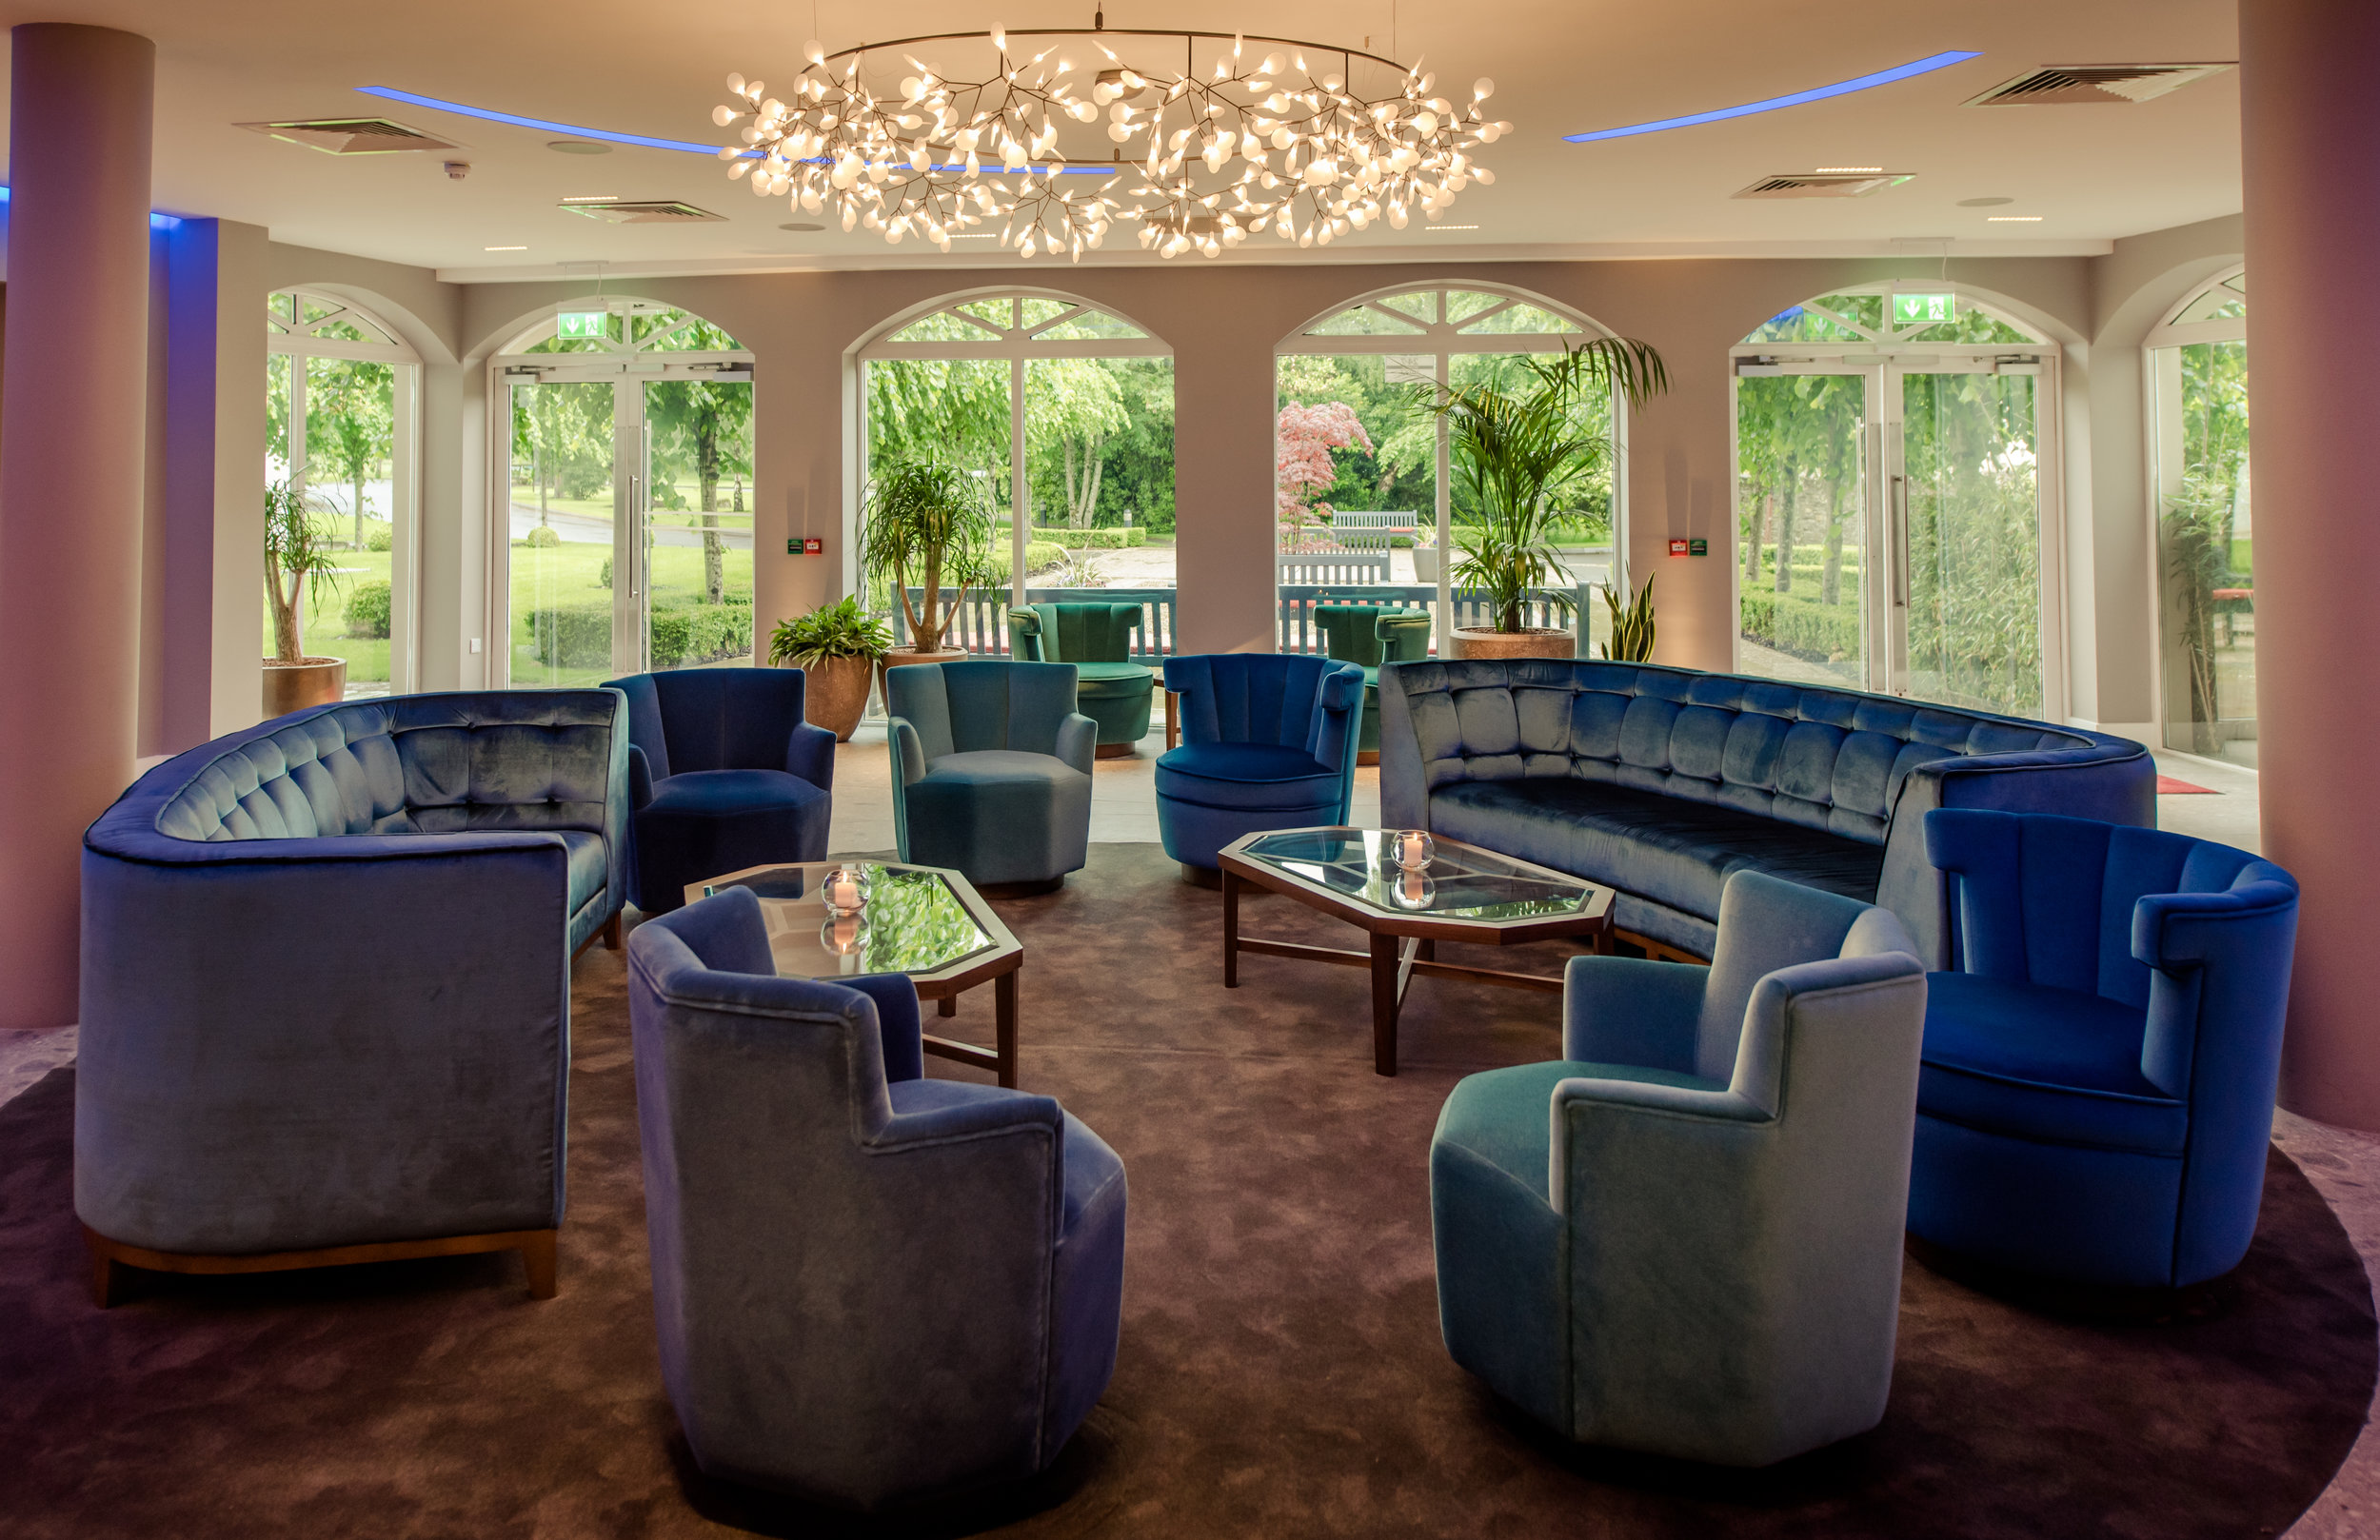 Tulfarris Hotel & Golf Resort lobby seating and view.jpg